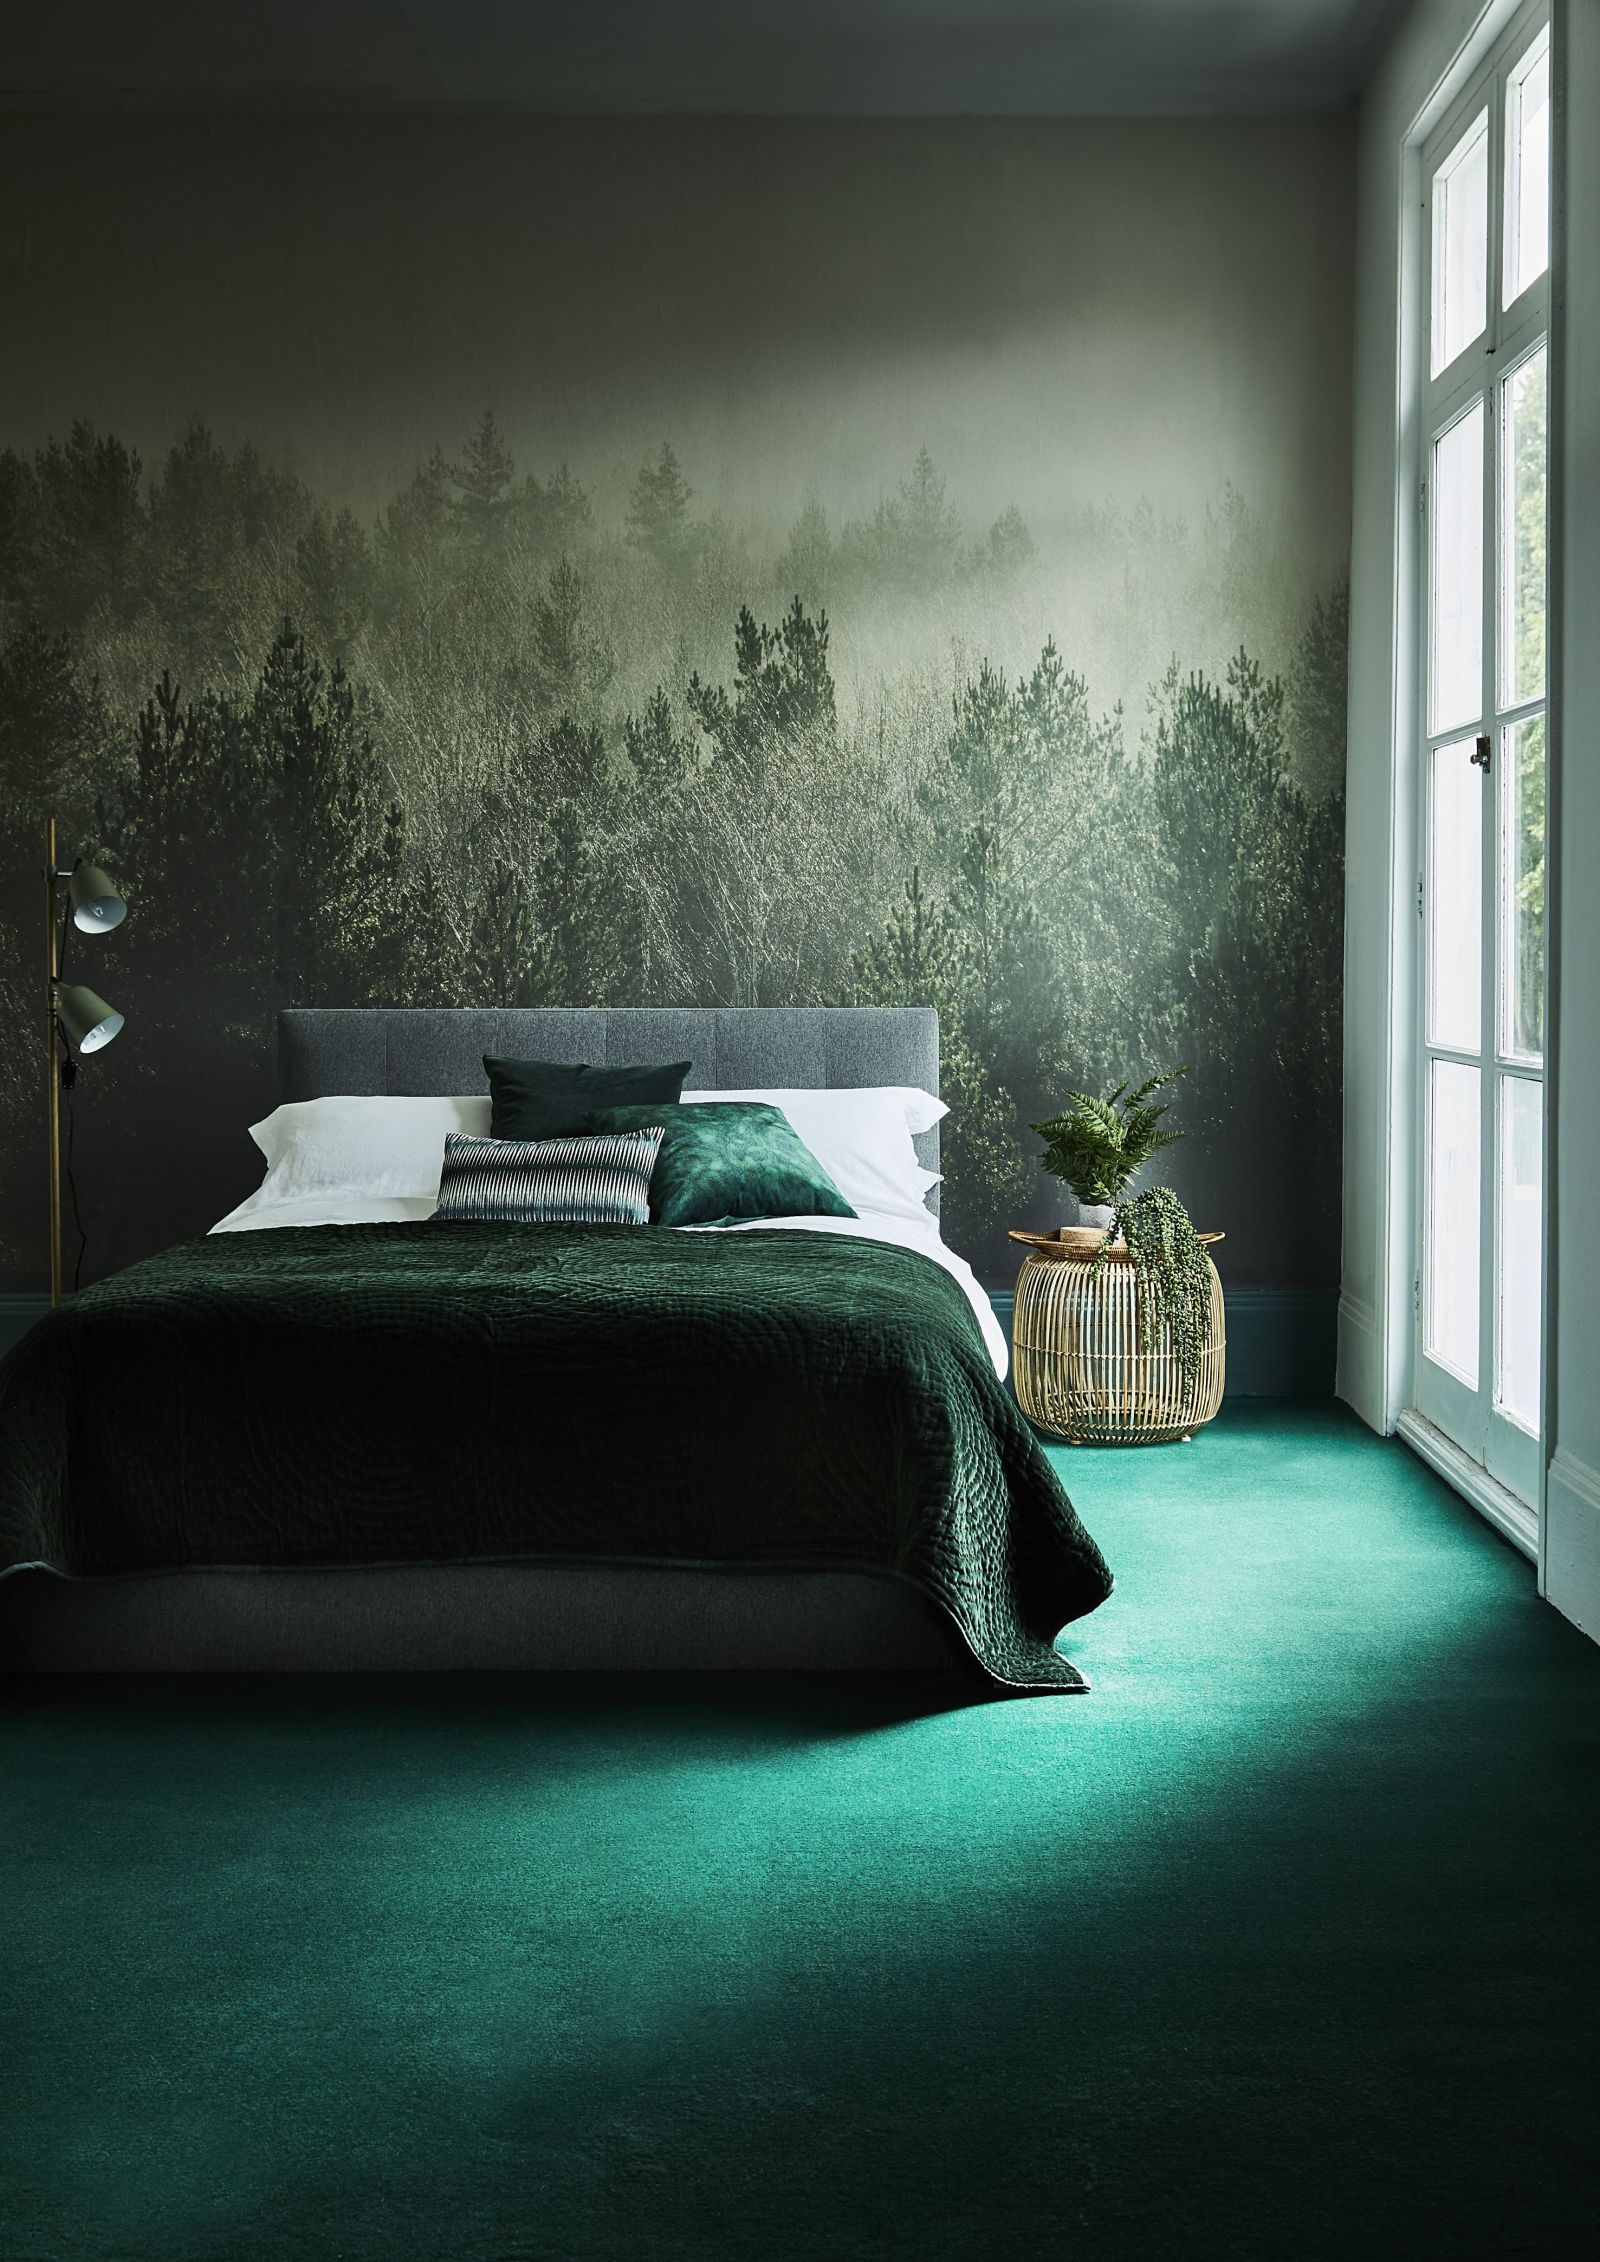 10*10 bedroom interior  of the hottest home and interior design trends for aw  bedroom